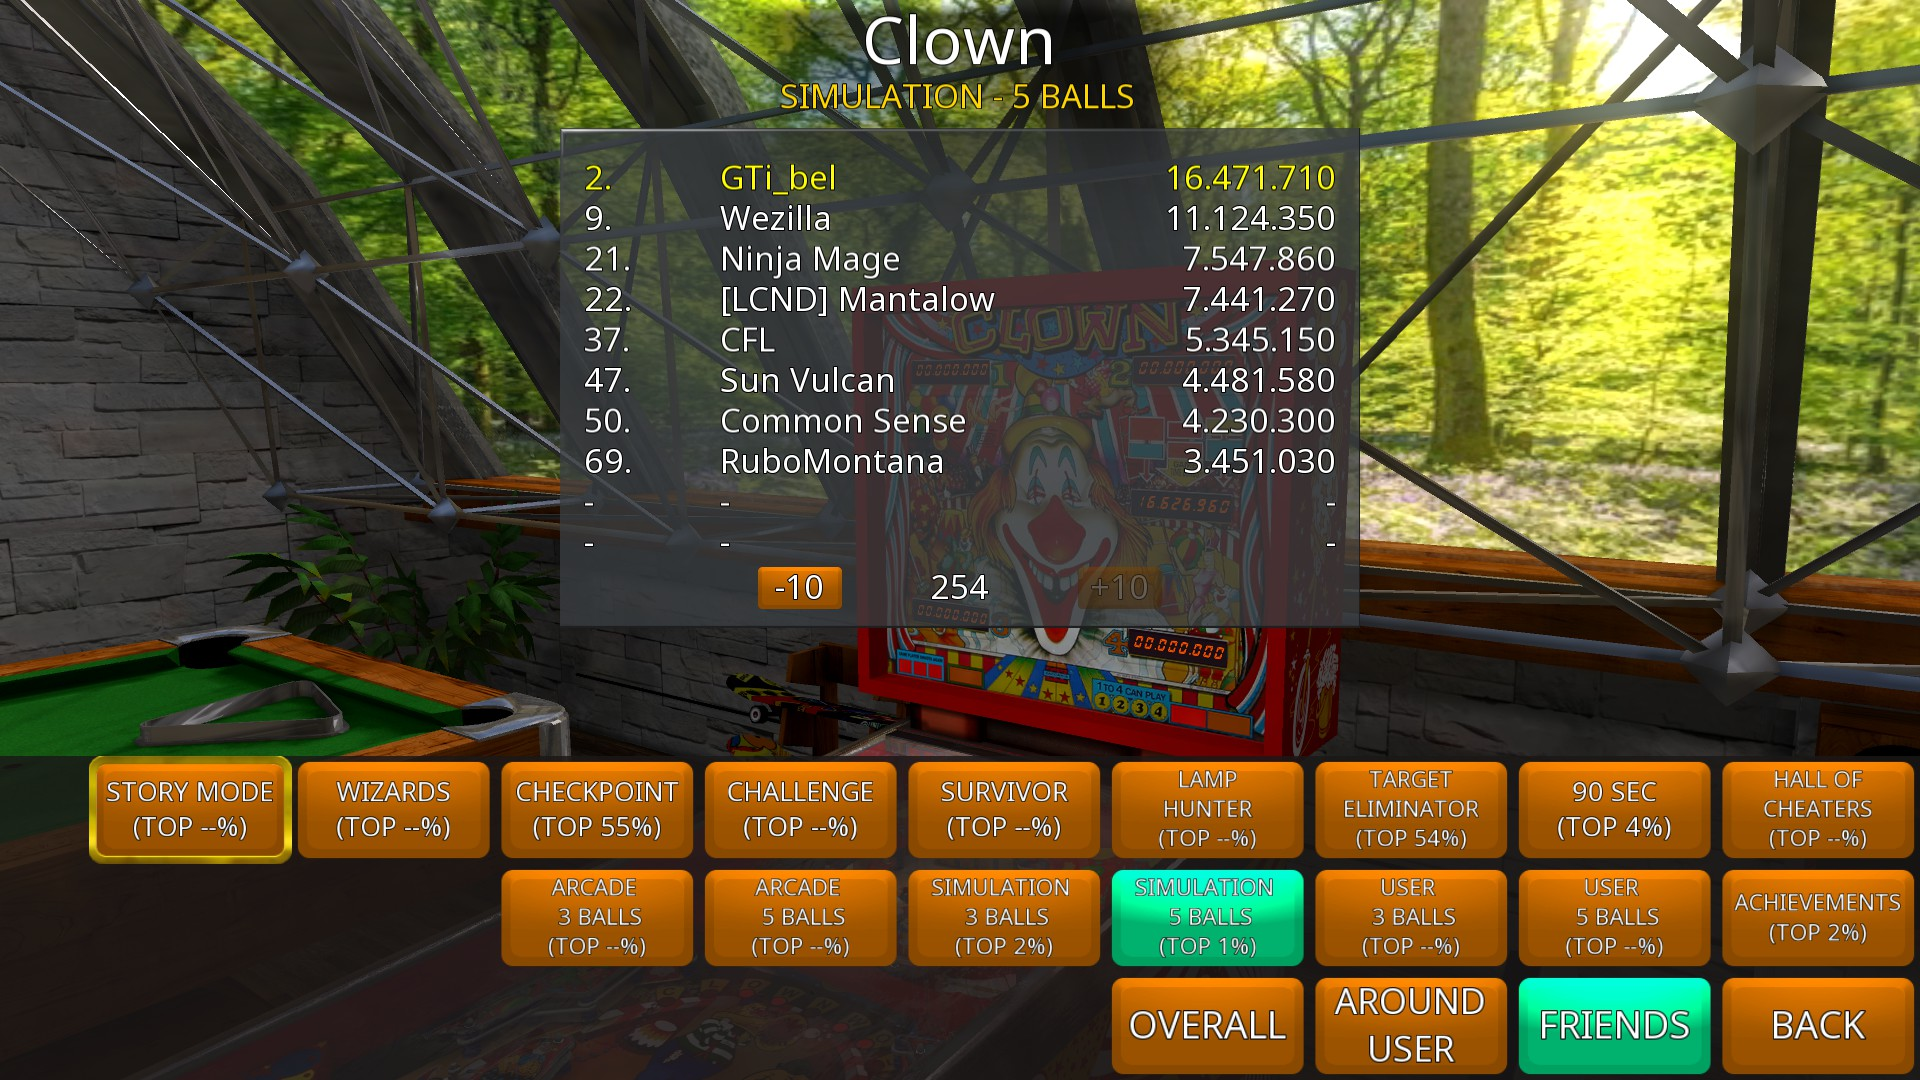 Zaccaria Pinball: Clown [5 balls] 16,471,710 points